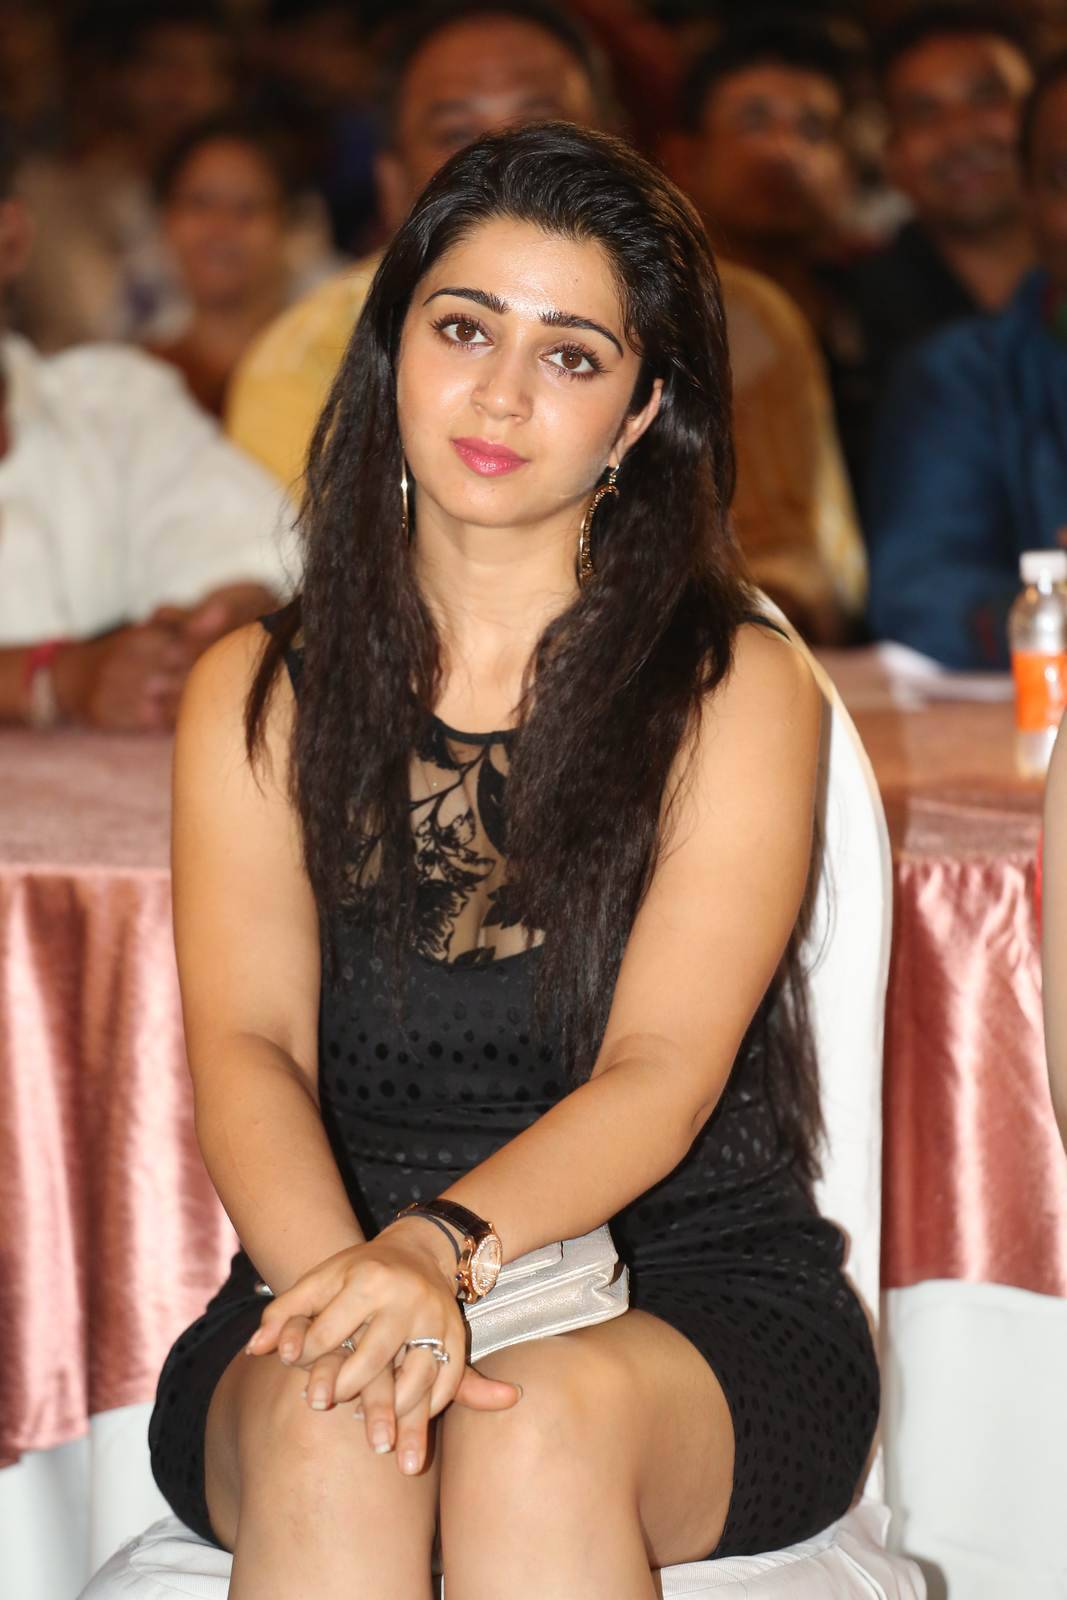 Tollywood Actress Charmi, Charmee Kaur Pics Clicked in Black Dress at Event